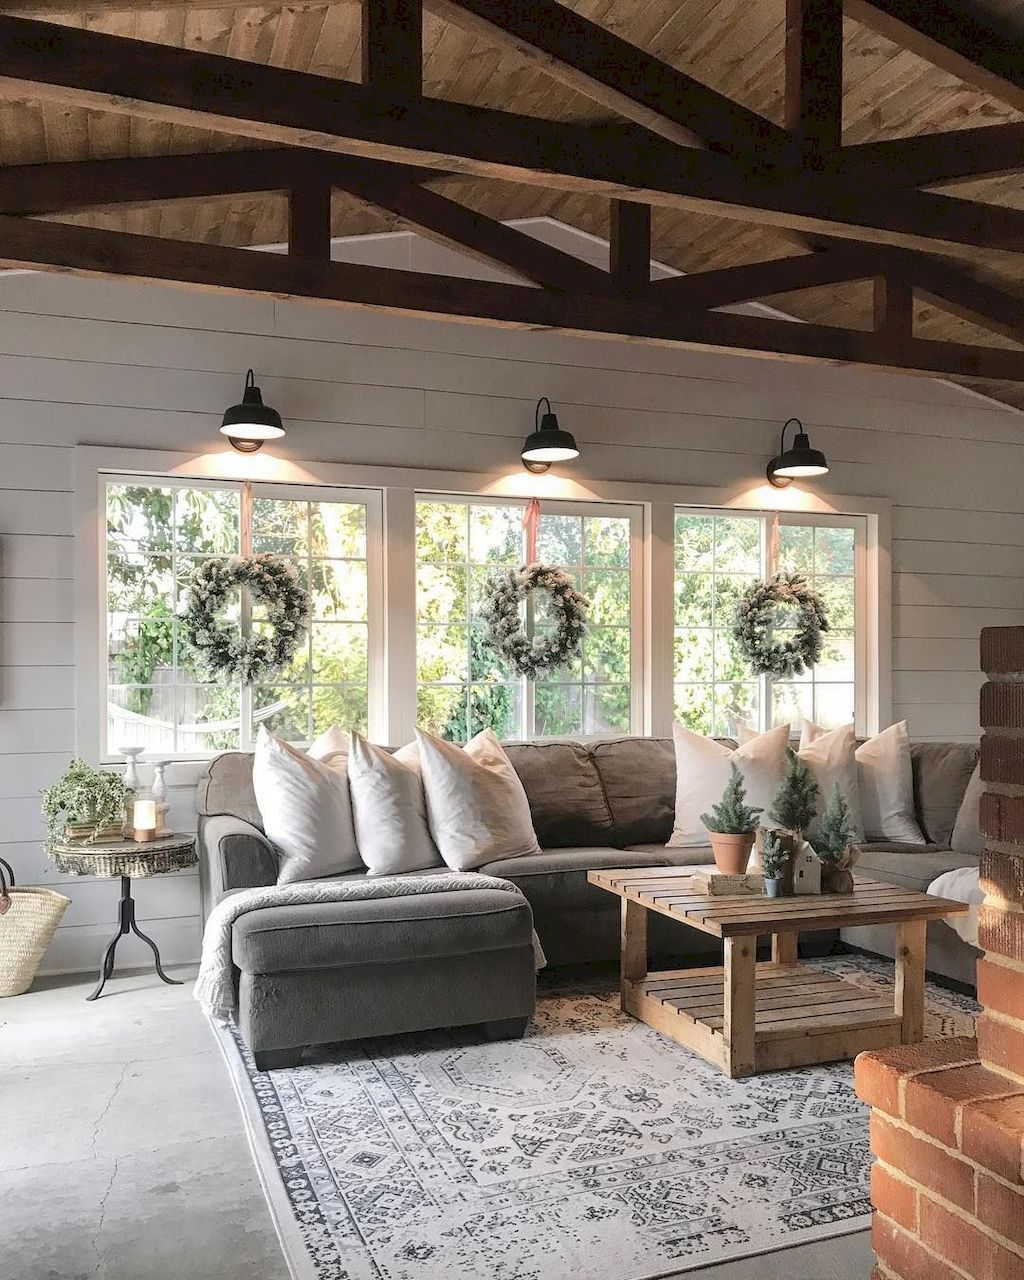 Cozy farmhouse living room decor ideas For the Home